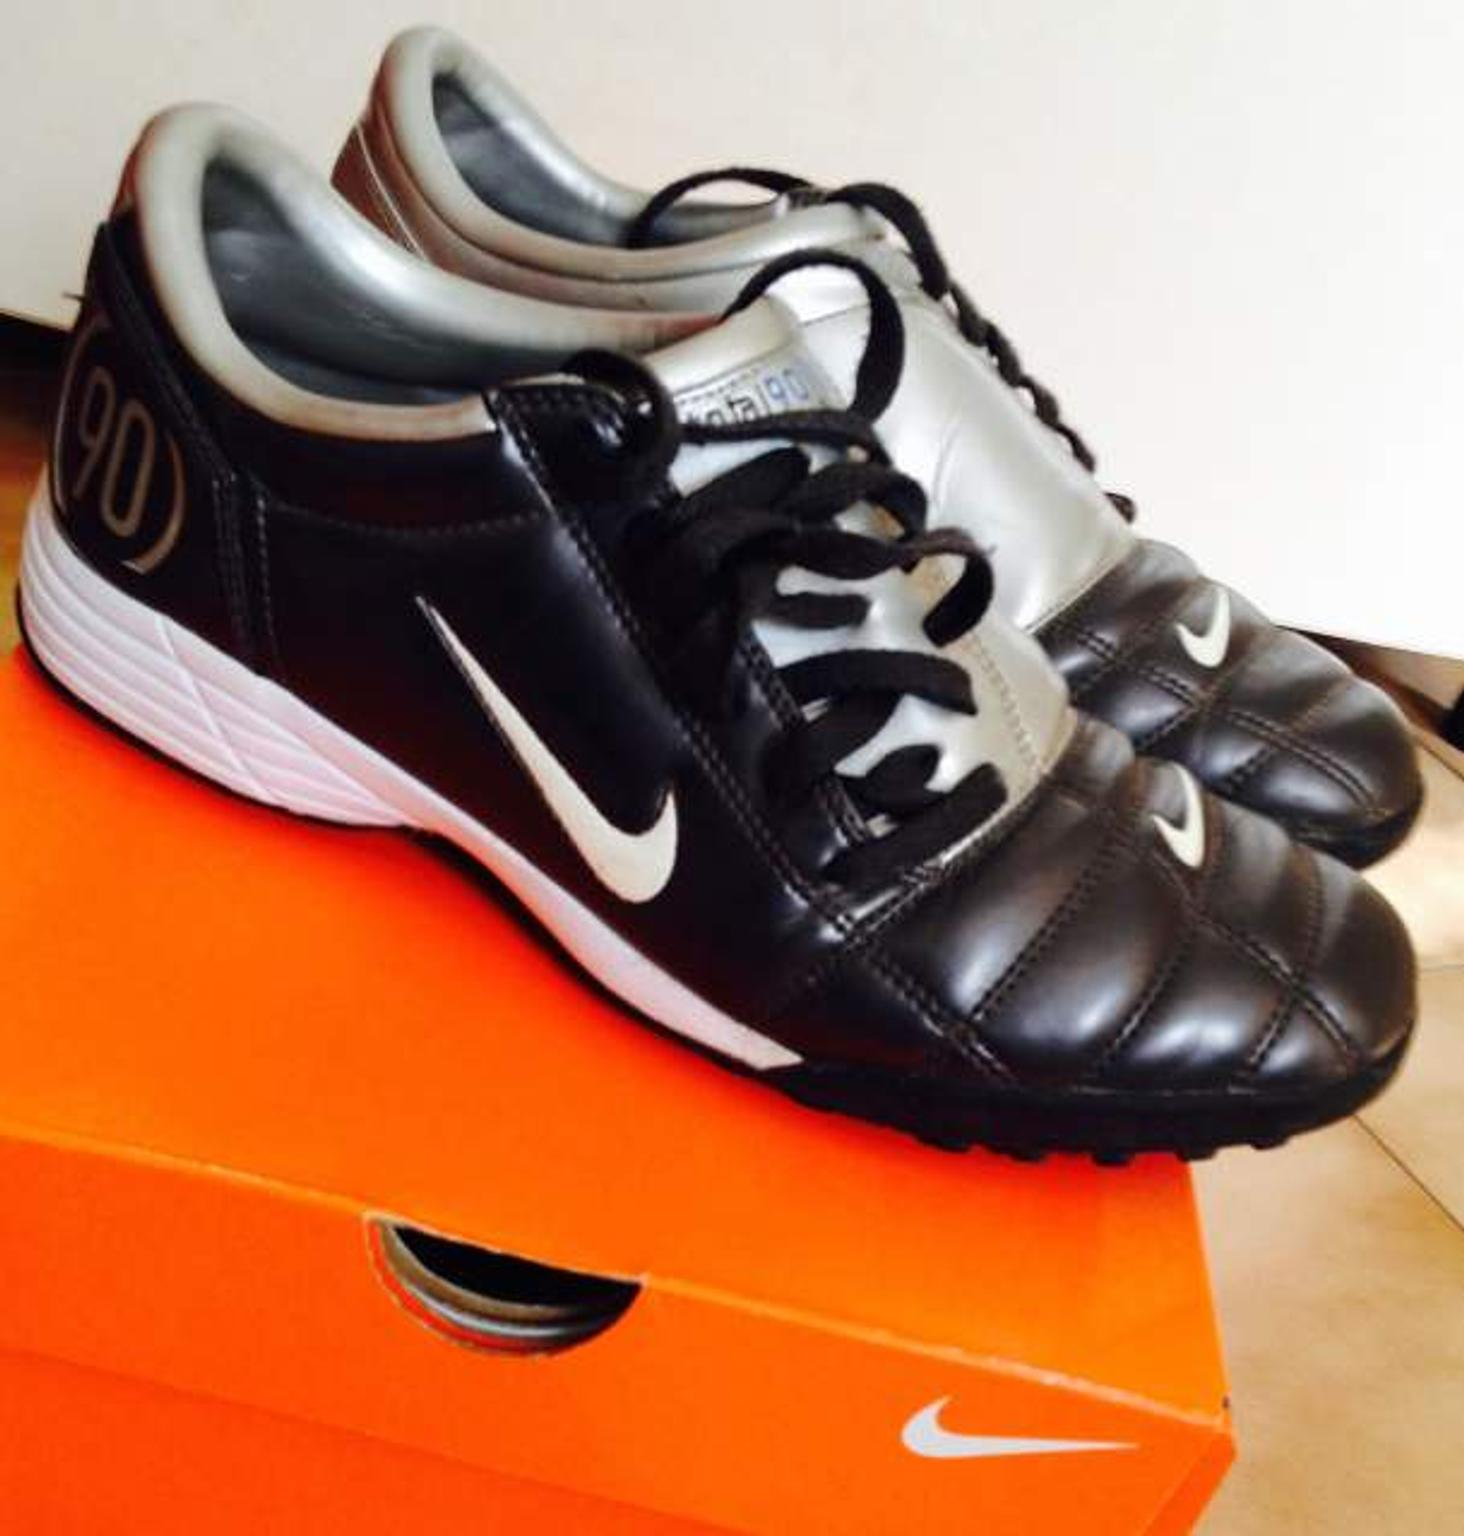 Nike Total 90 in 21049 Tradate for €25.00 for sale | Shpock